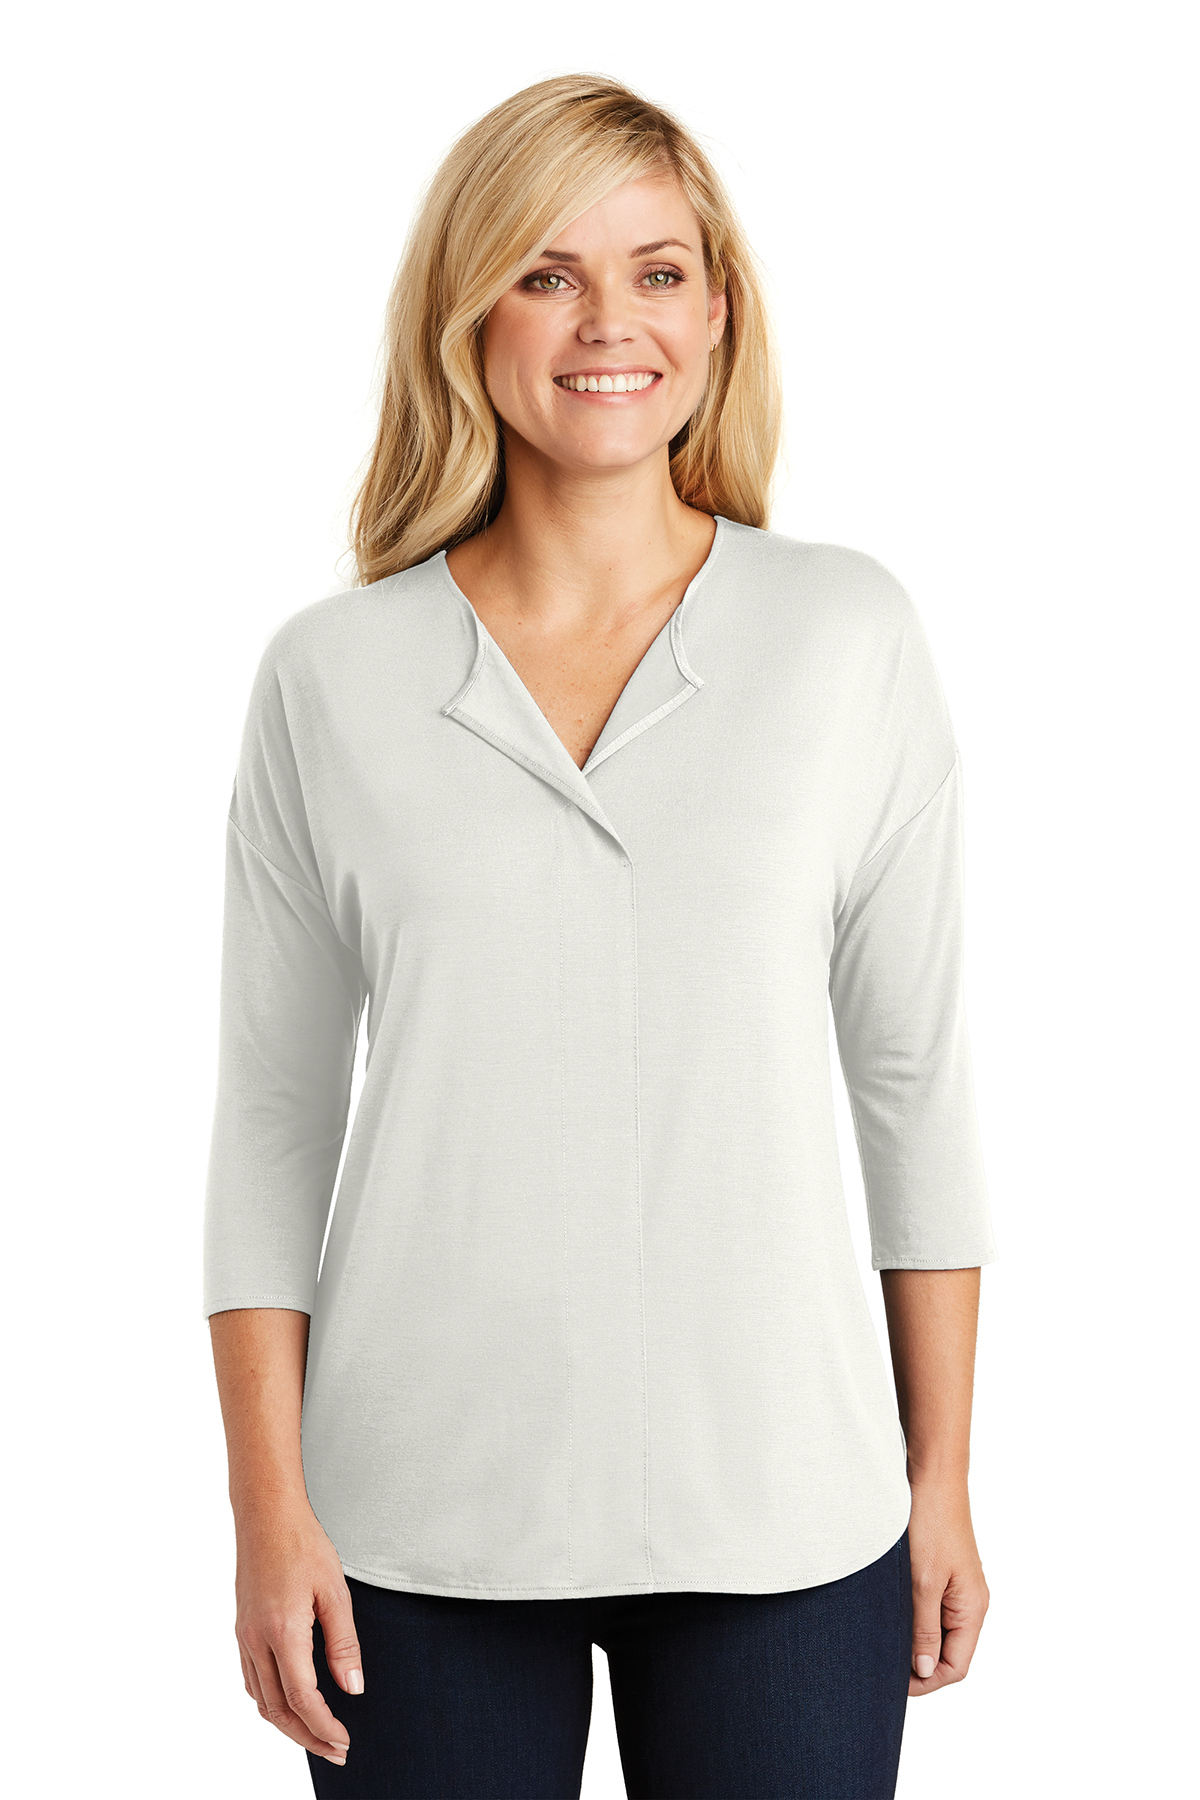 Port Authority LK5433 - Ladies Concept 3/4-Sleeve Soft ...